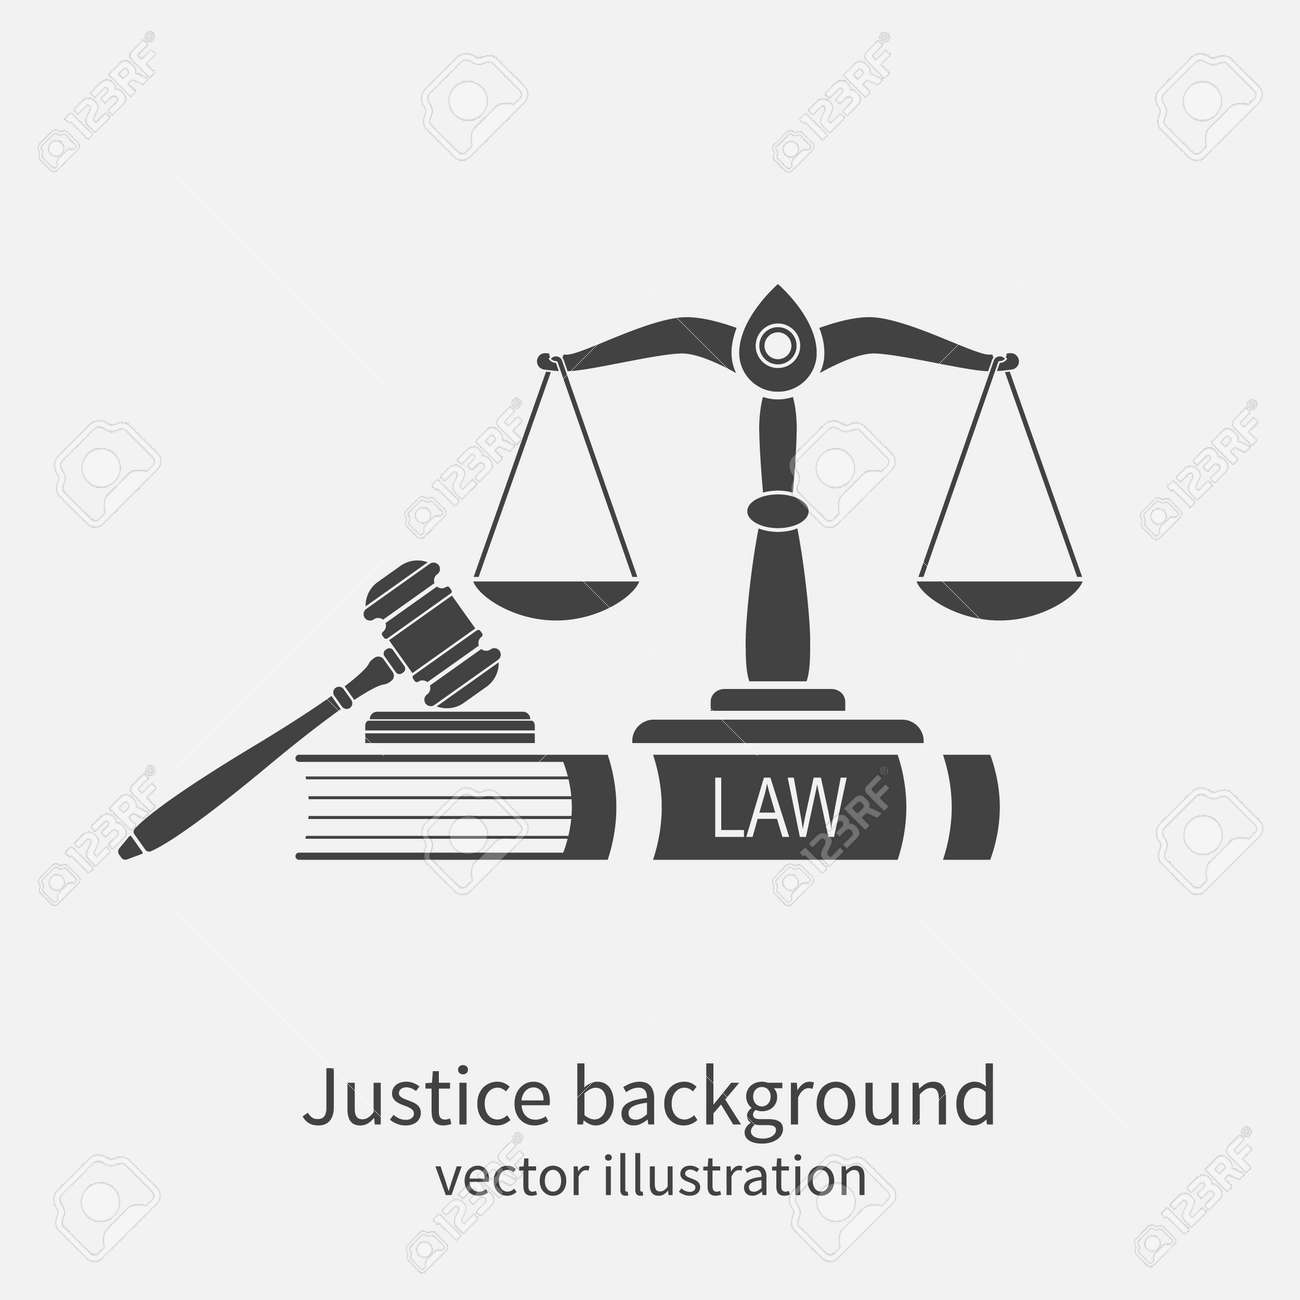 Symbol of law and justice. Concept law and justice. Scales of justice, gavel and book. Vector illustration. Can be used as logo legality. - 54110030